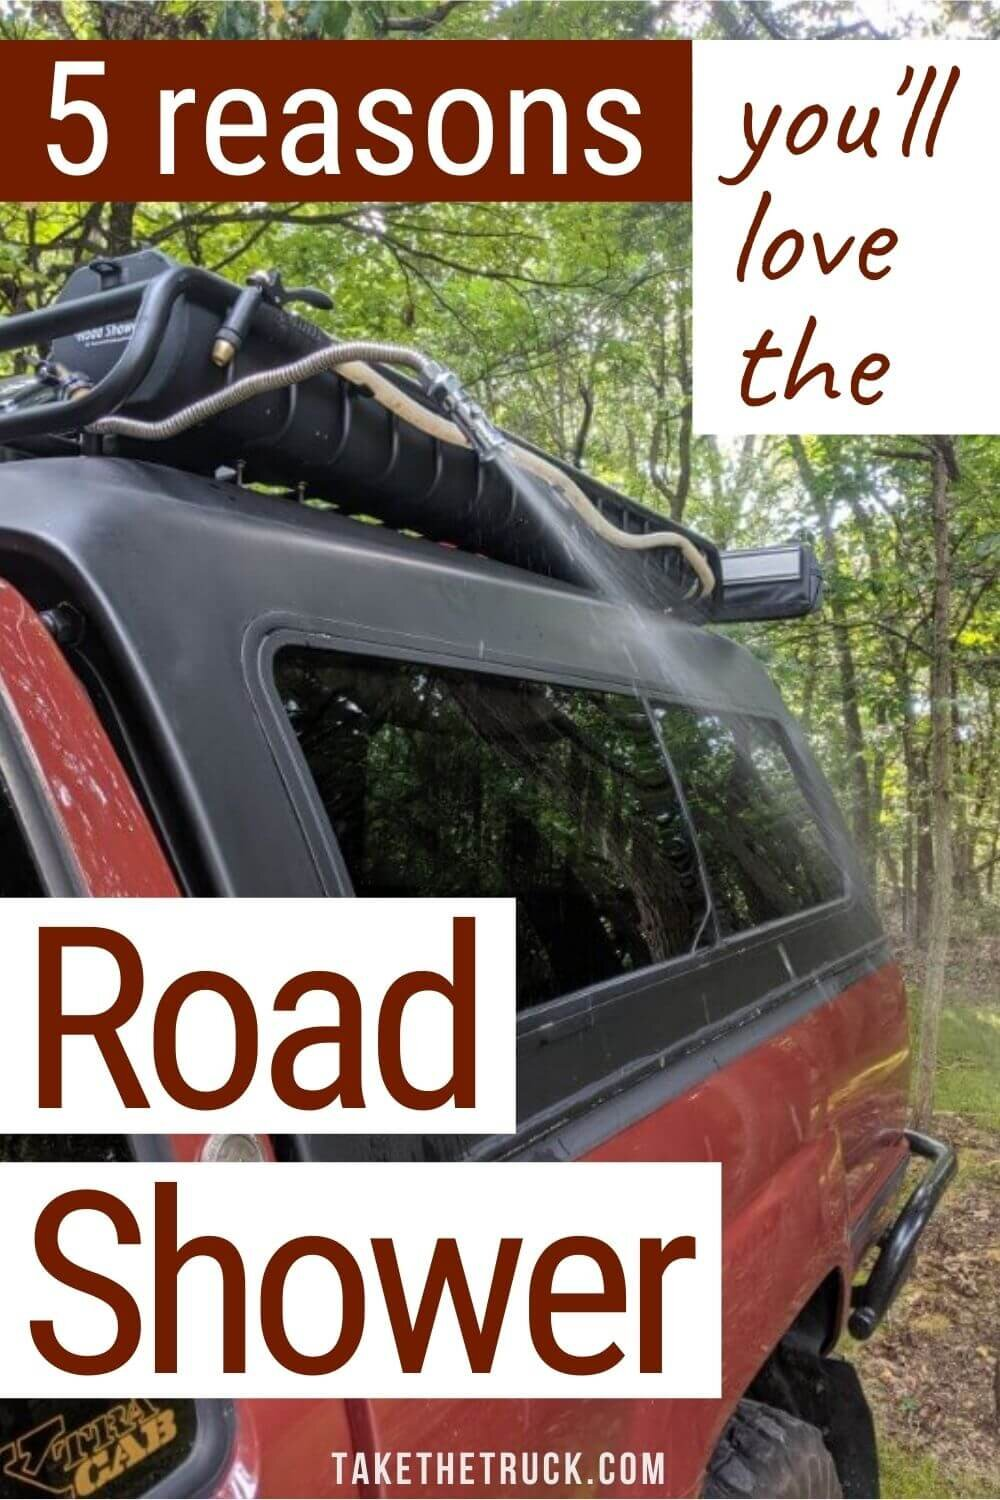 The Road Shower 4 is a truck camping water container and shower, in one! The Roadshower makes an awesome outdoor shower for your camper and doubles as water storage for drinking.